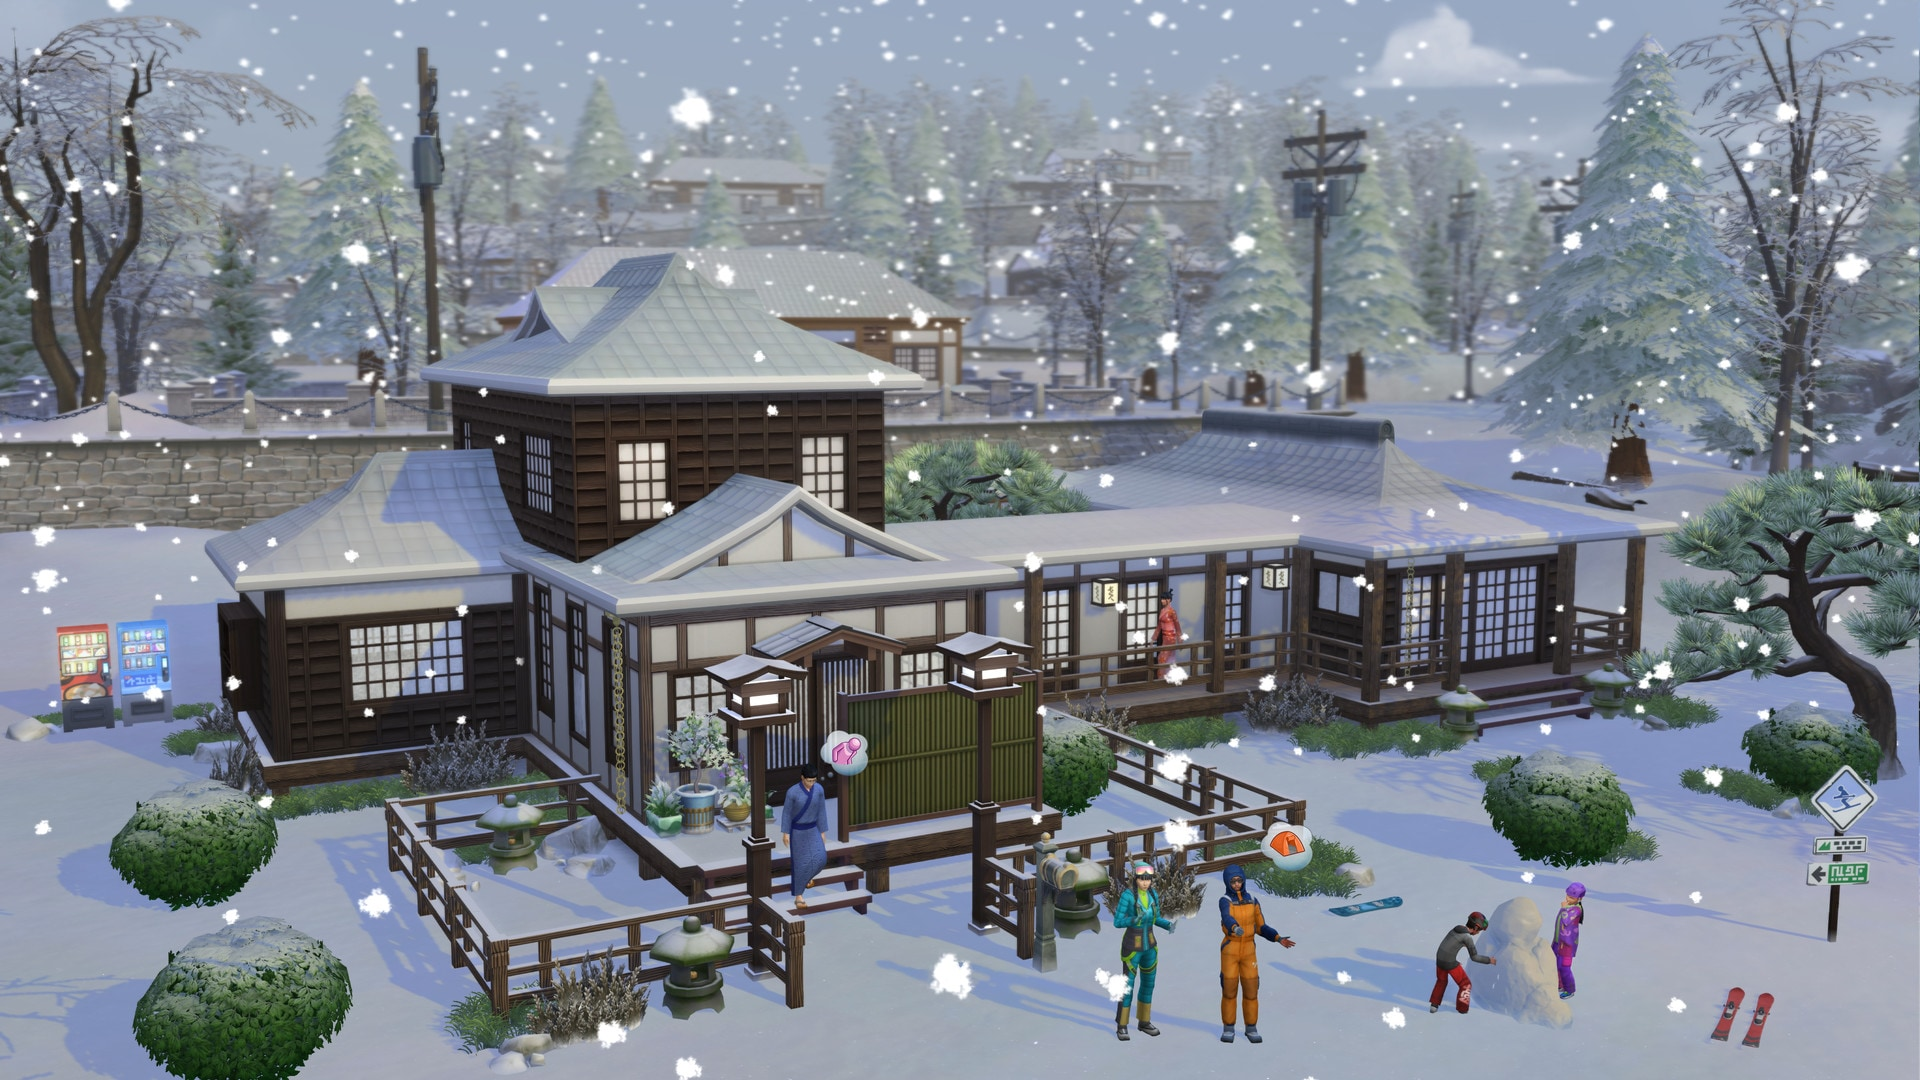 The Sims 4 Snowy Escape Pack (PC) - Origin Key - GLOBAL - 4